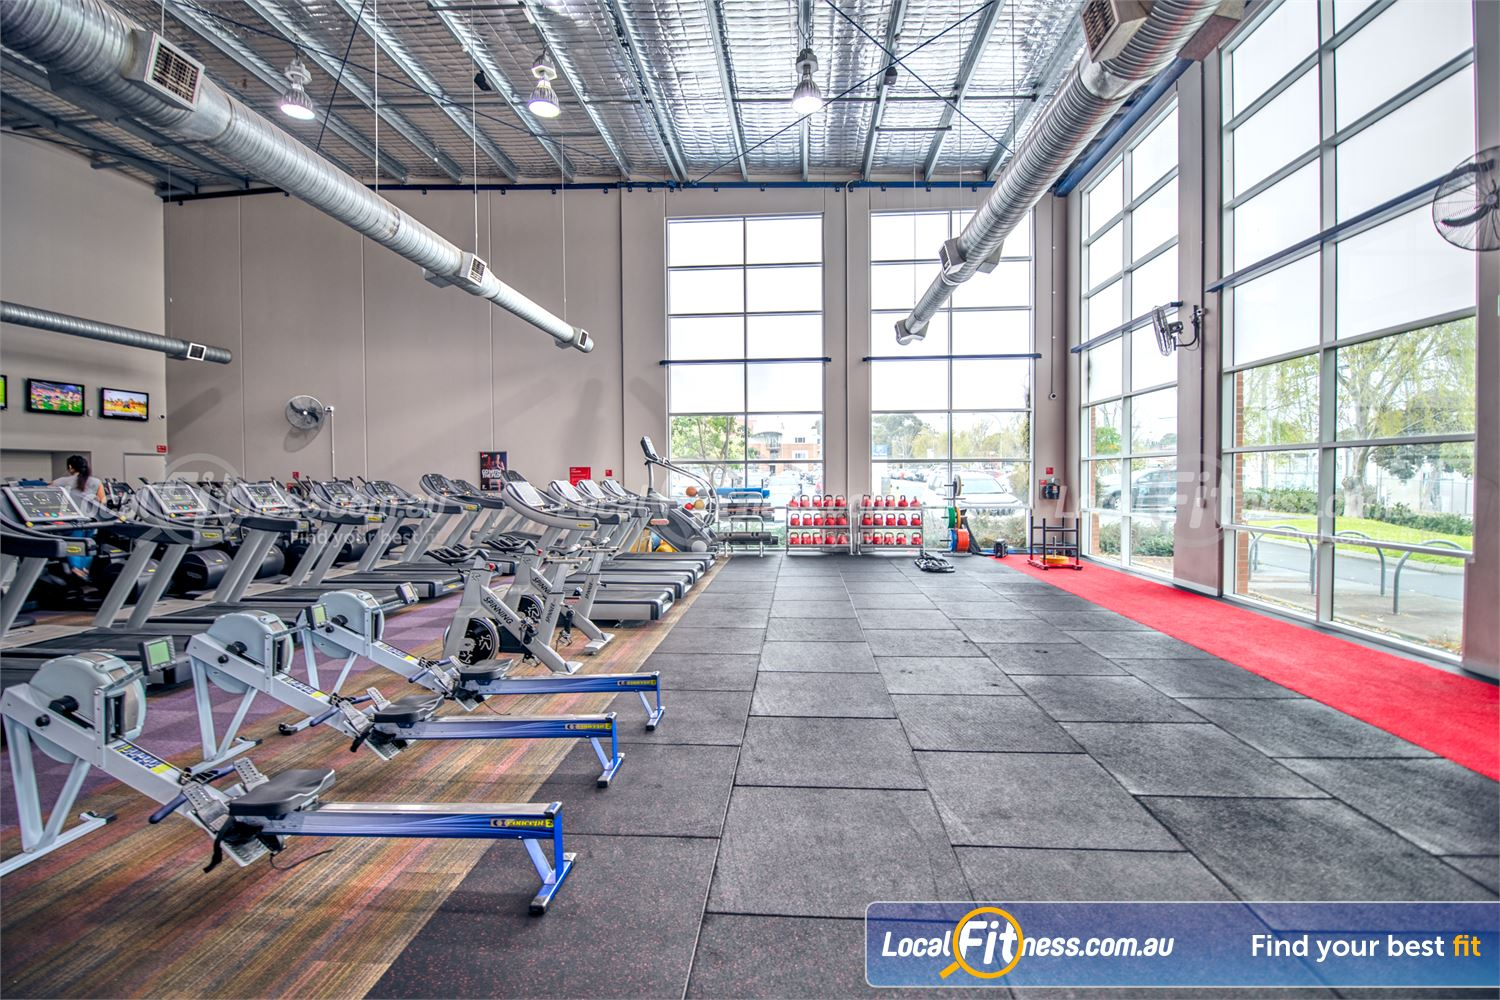 Fitness First Malvern Valley Near Oakleigh Our Malvern Valley gym includes a state of the art cardio area.